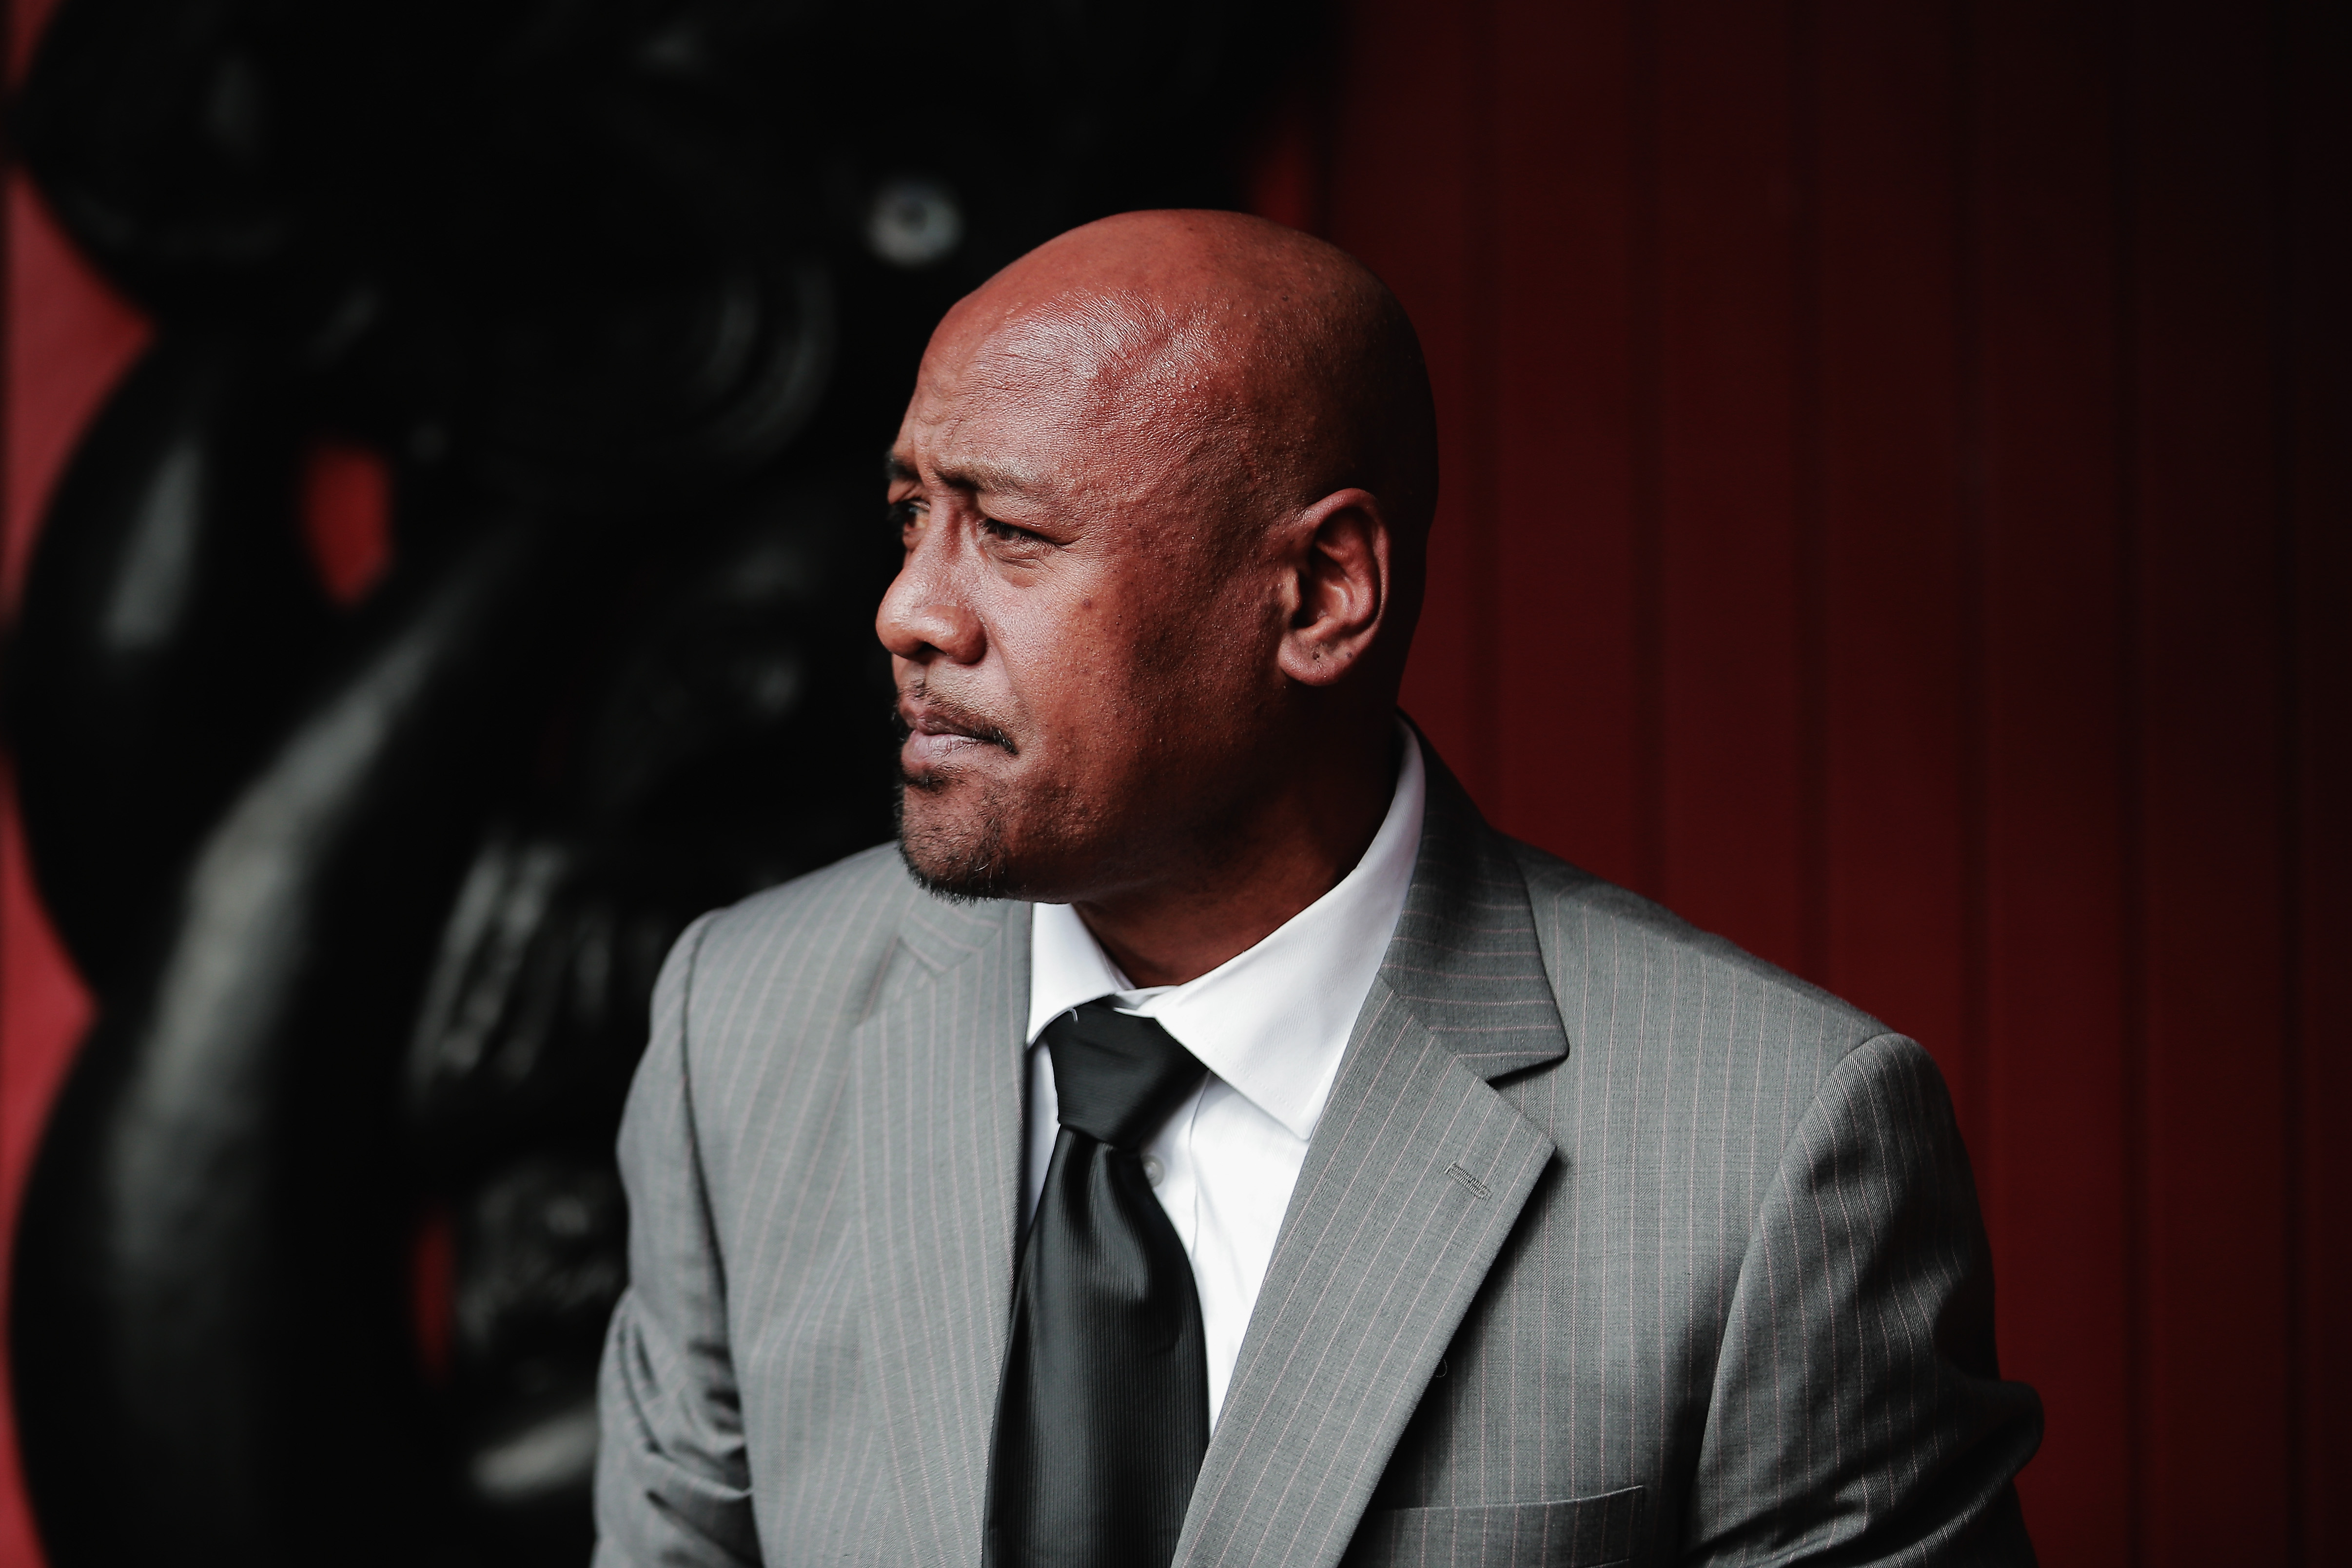 Jonah Lomu pictured on May 30, 2014, in Auckland